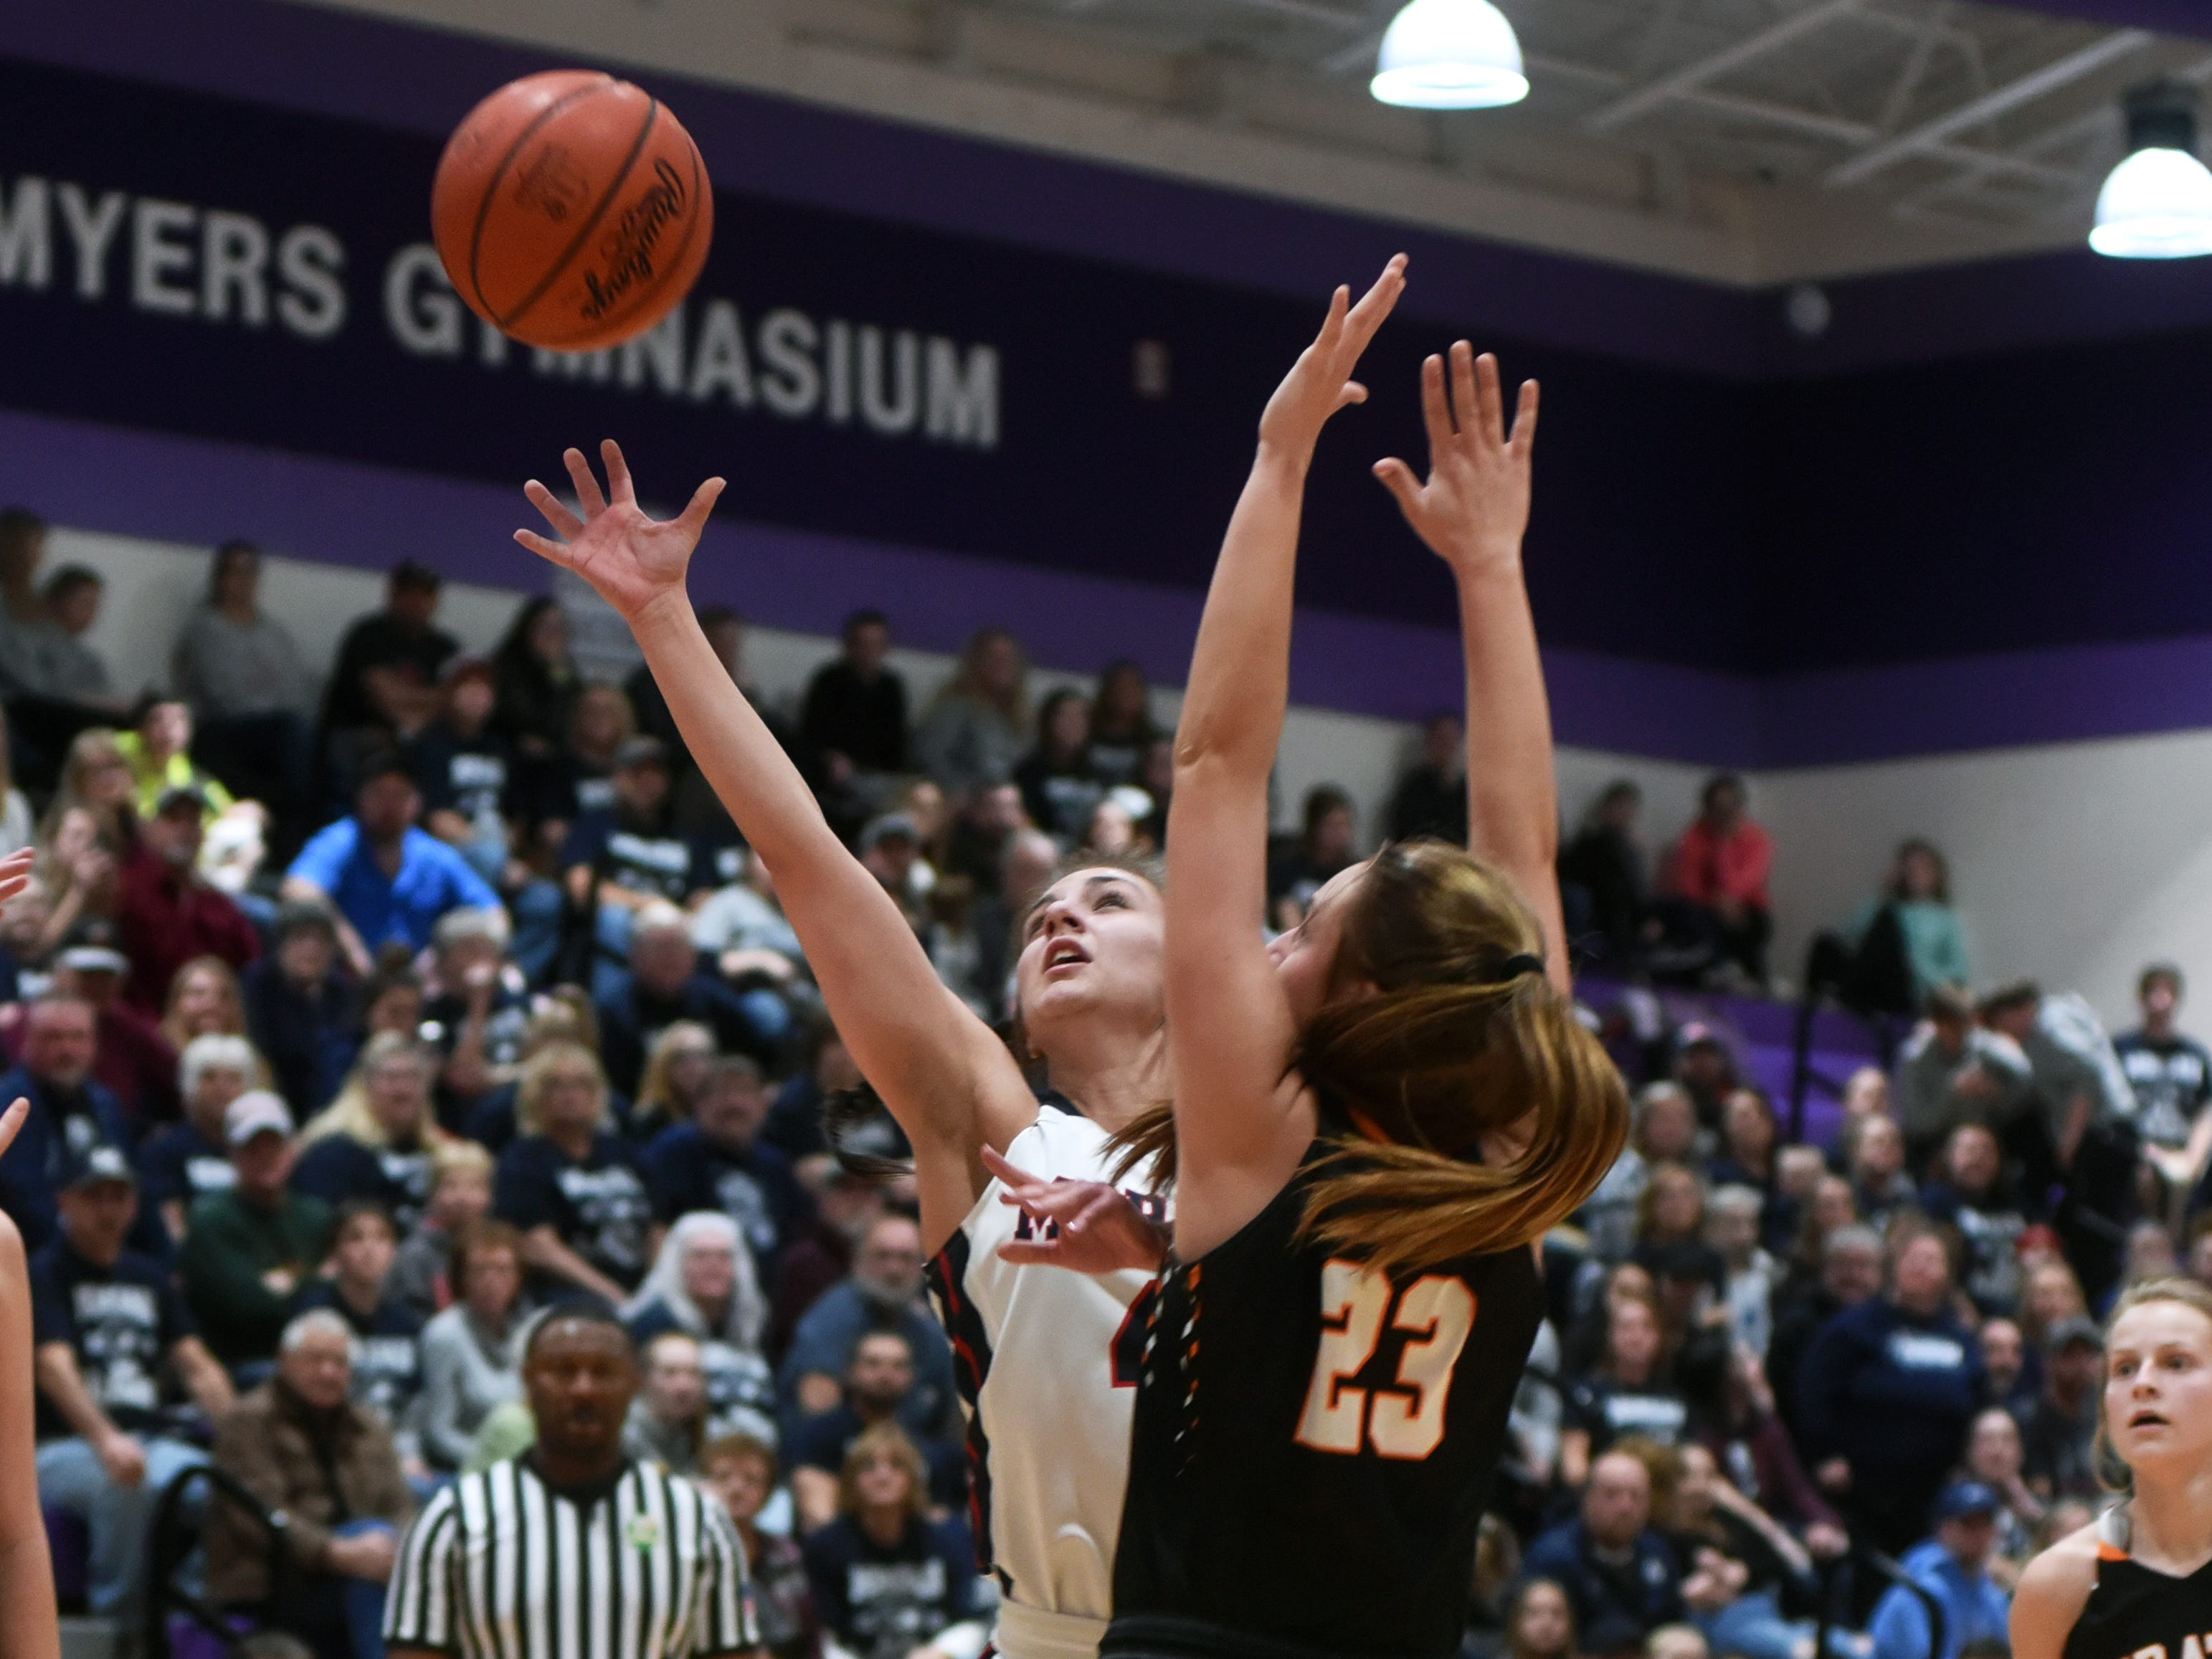 Avery Dilleha goes up for a shot during Morgan's 56-55 loss to Wheelersburg in a Division III regional semifinal at Logan.